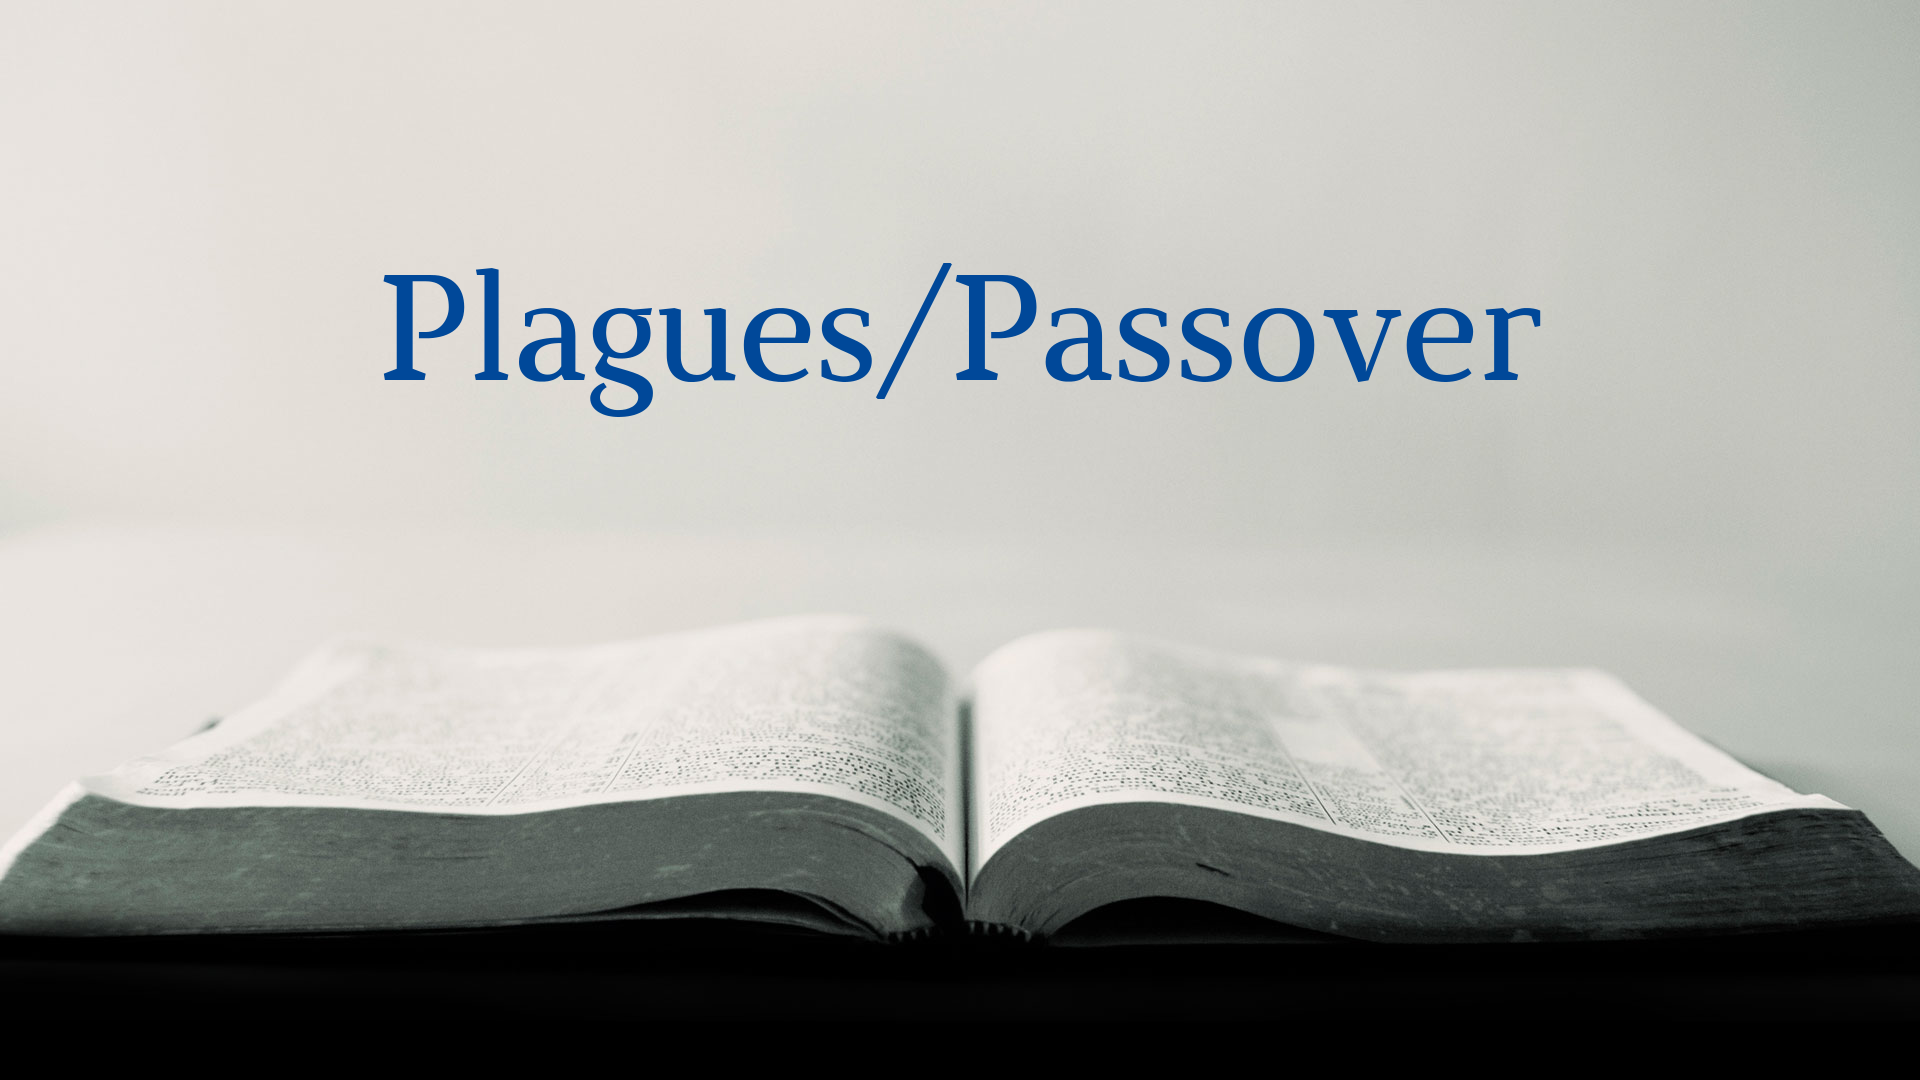 Plagues/Passover - Faithlife Sermons